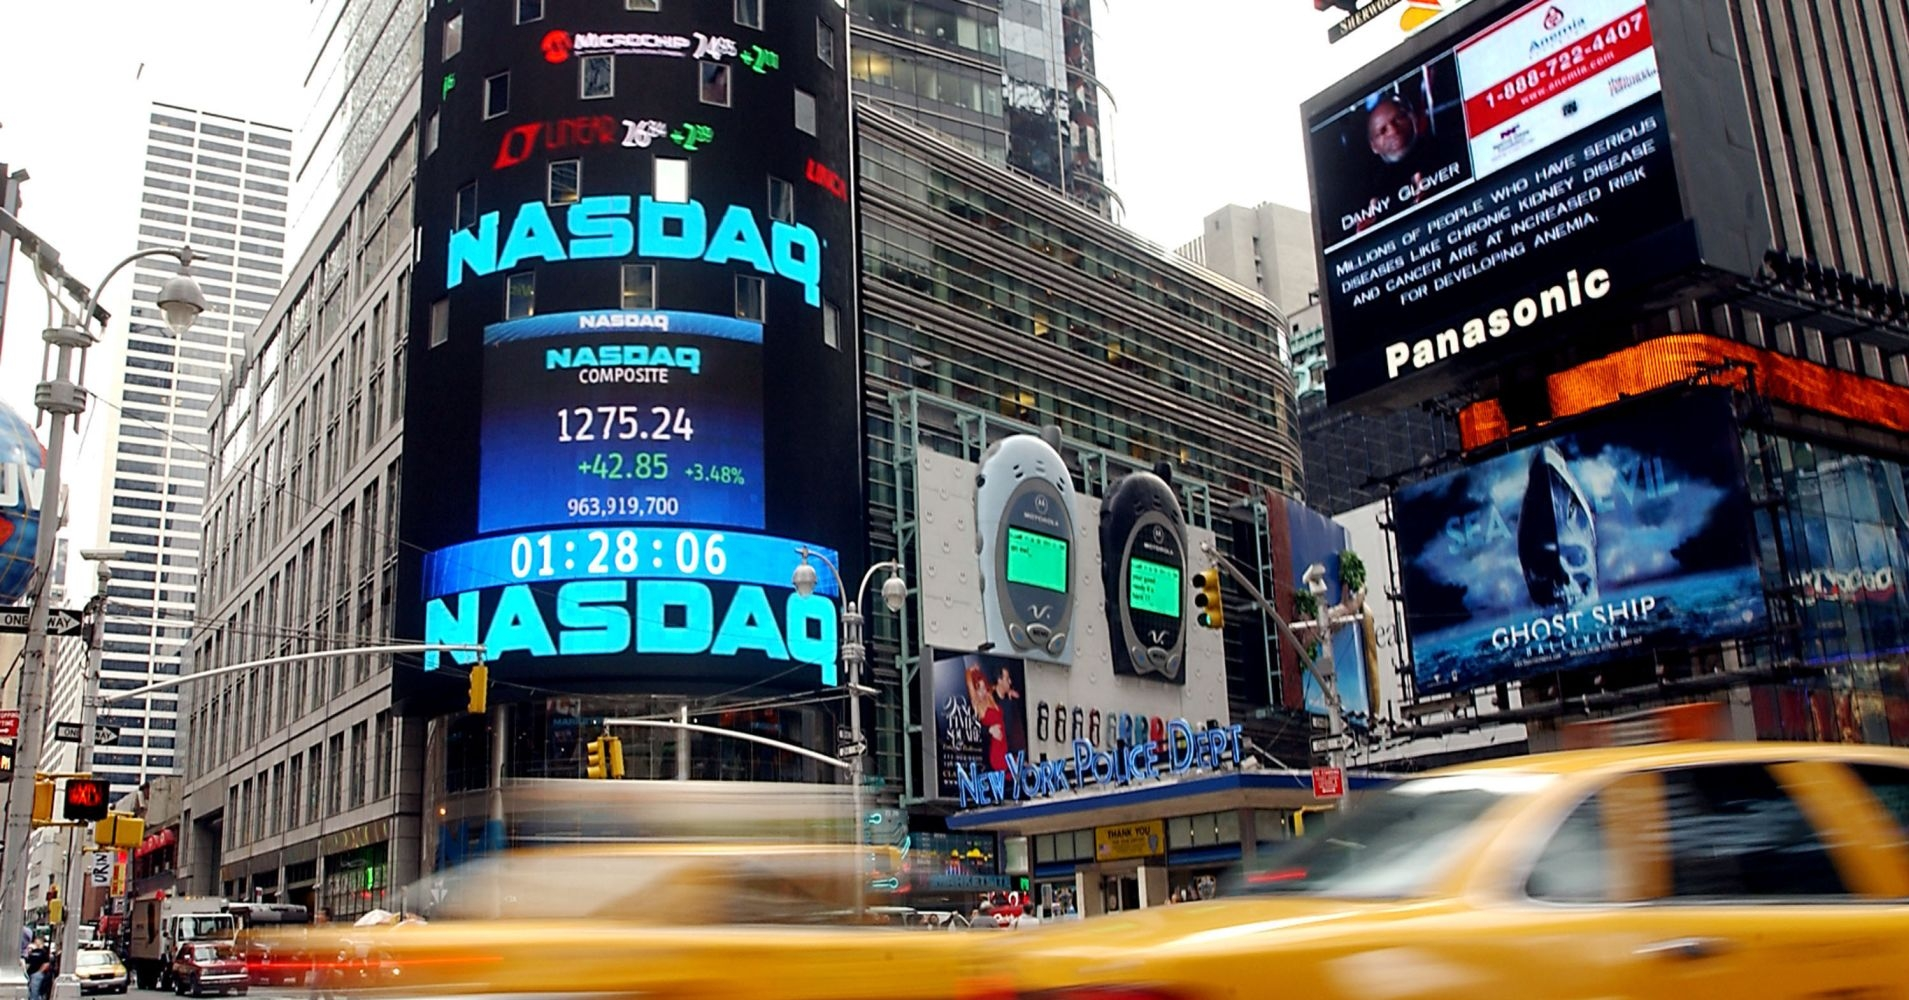 Stock Prices Today: Nasdaq turns positive, tech power retains, Dow jumps 200